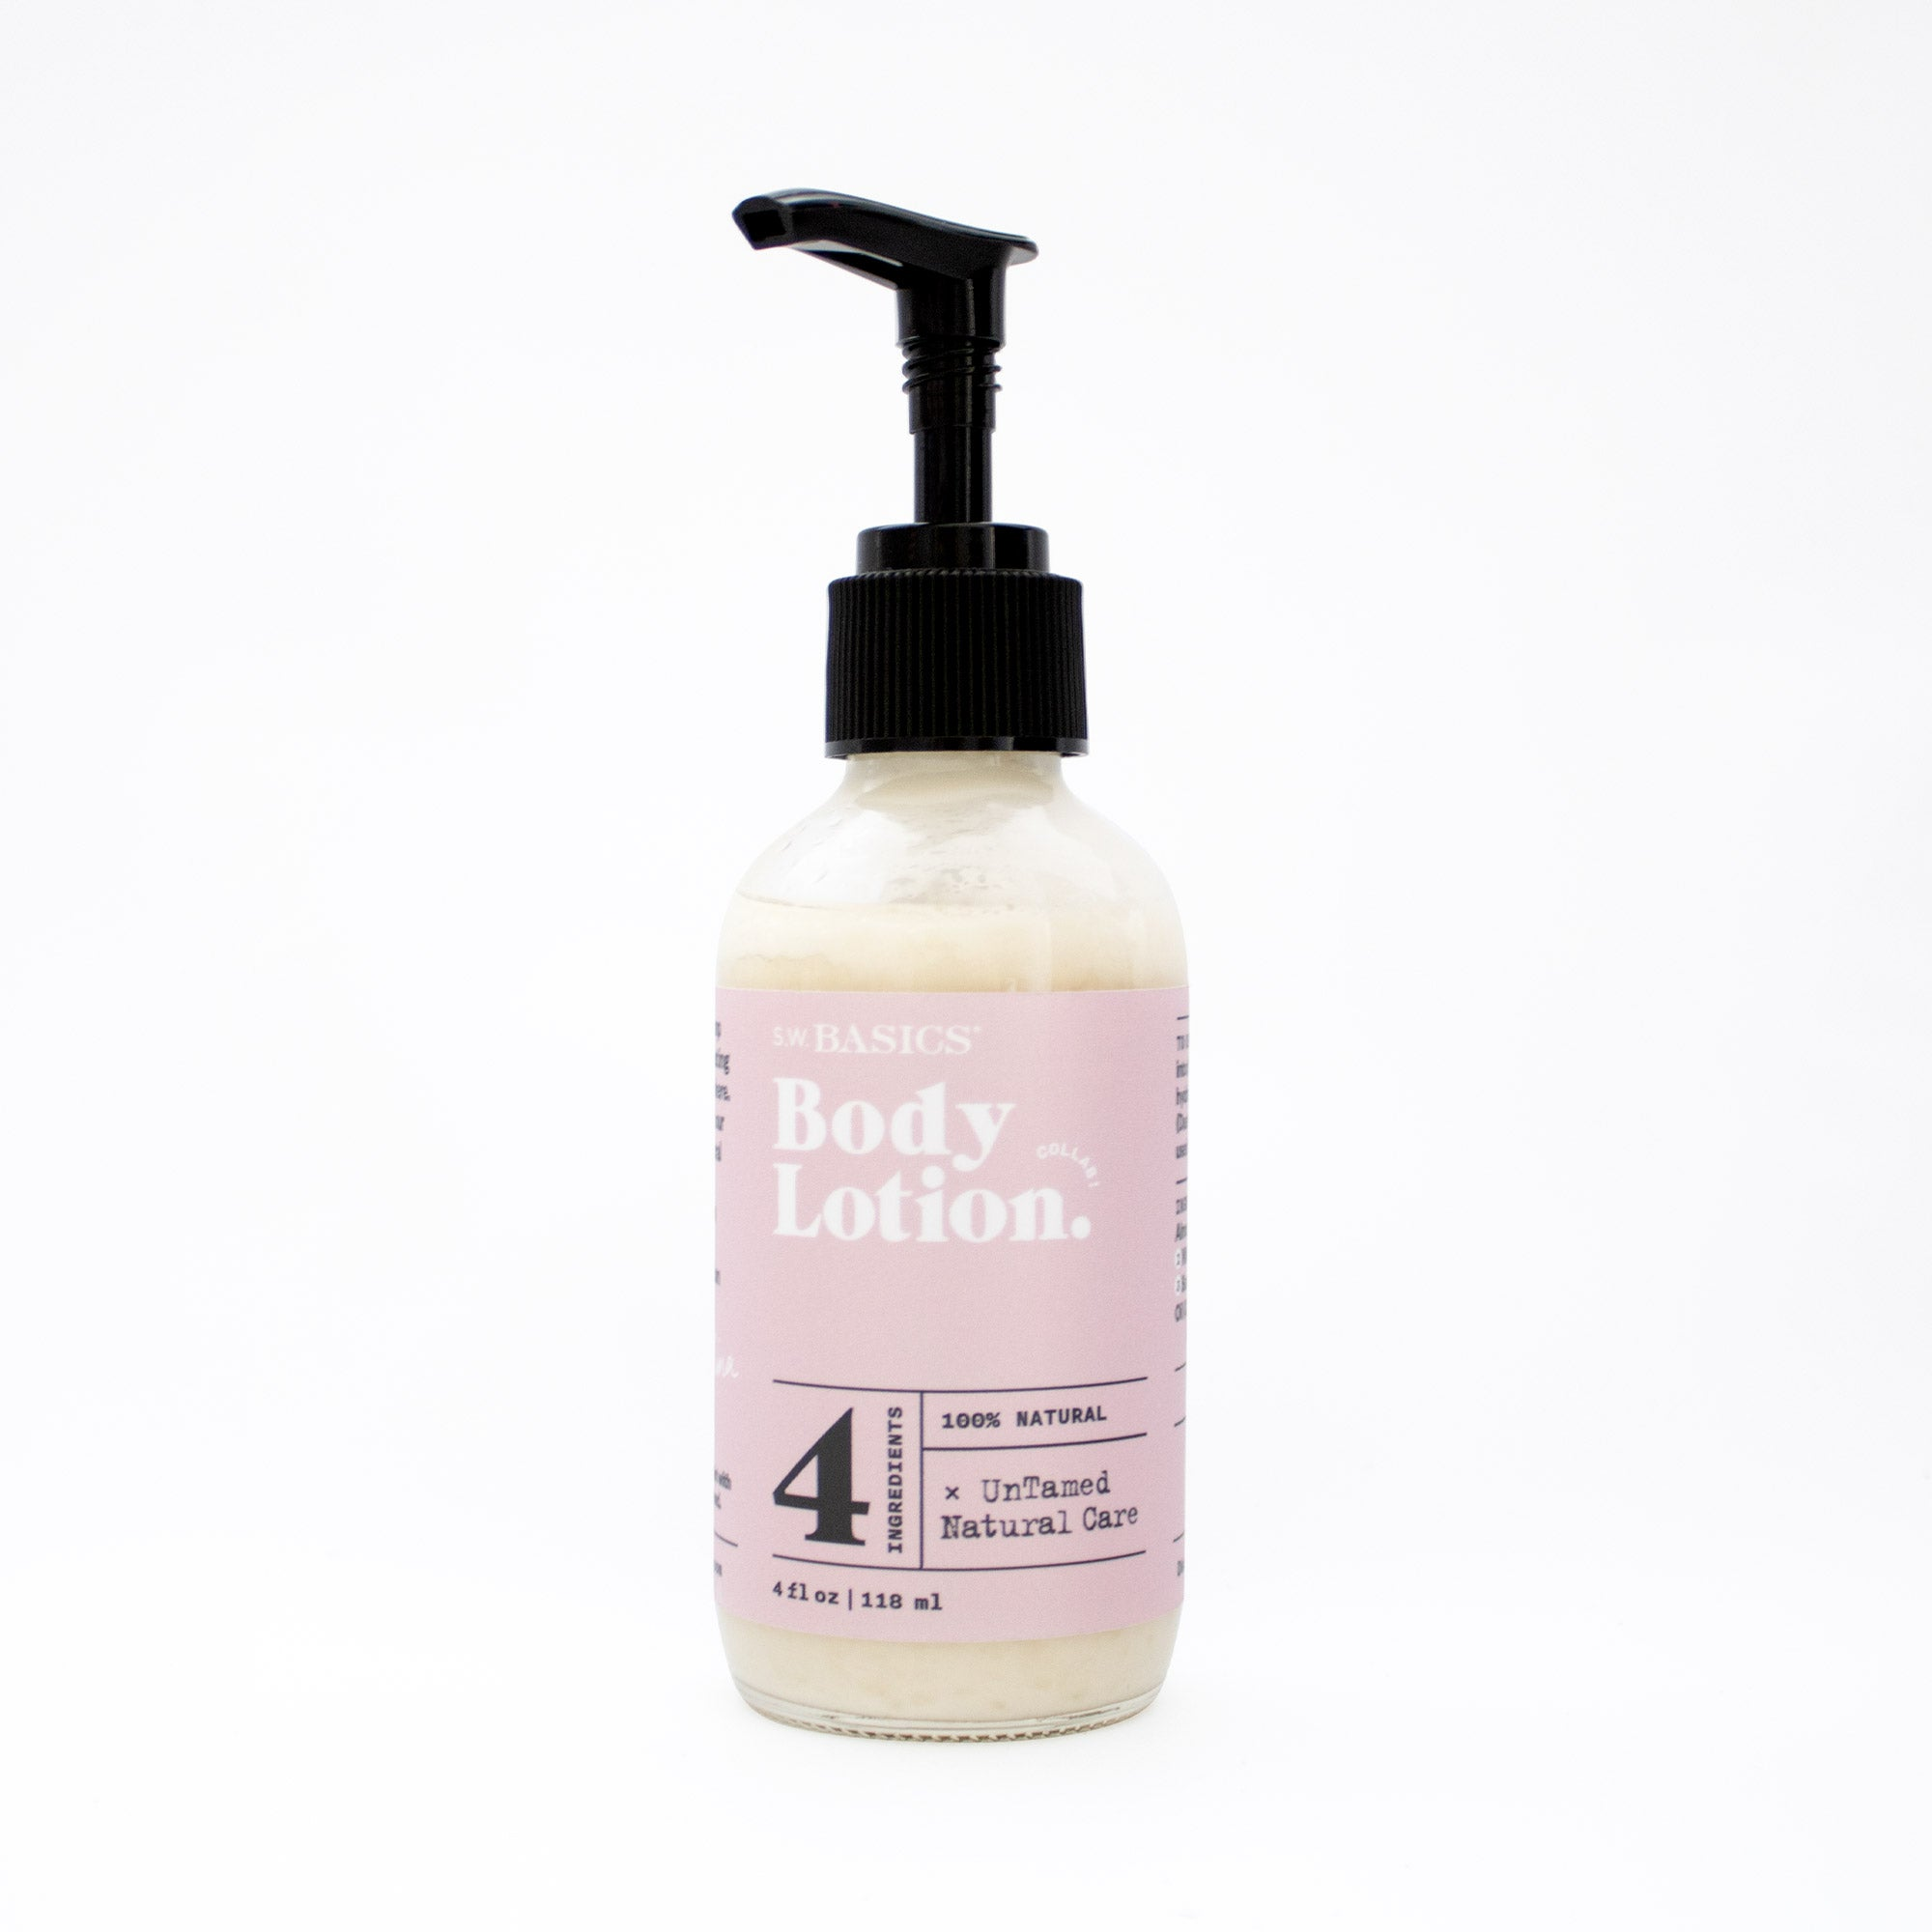 S.W. Basics x UnTamed Naturals Body Lotion